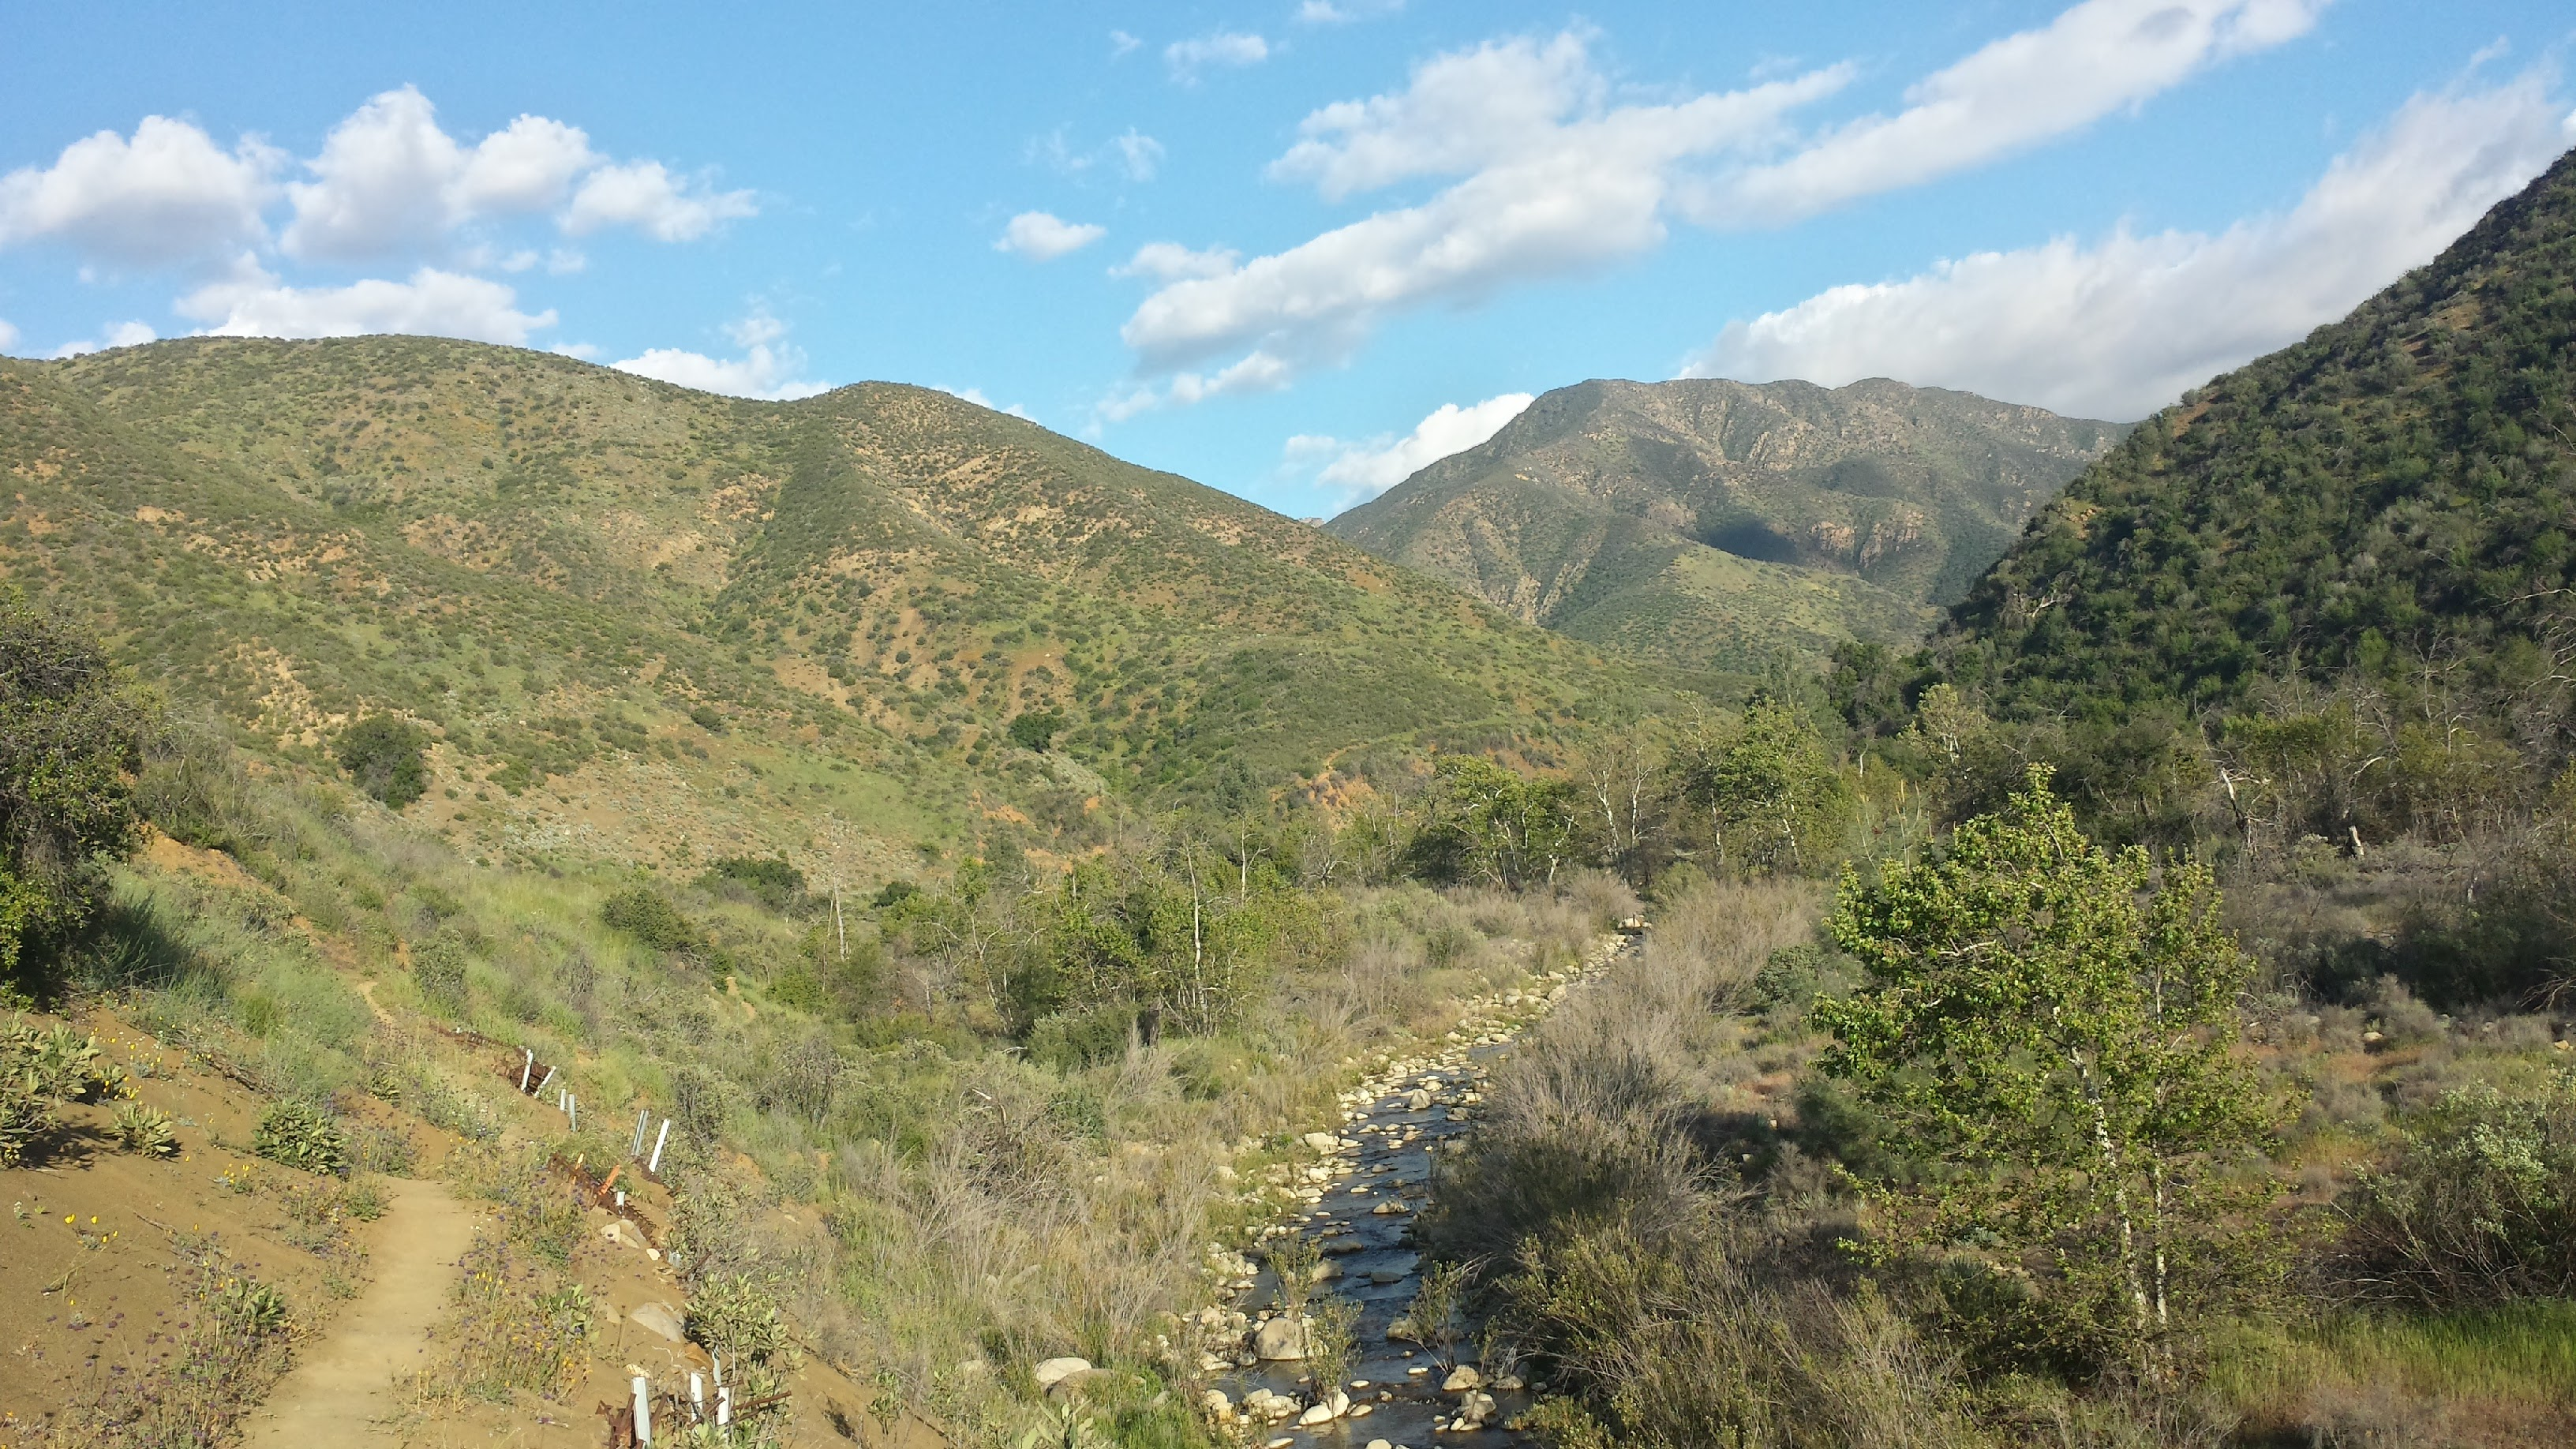 Looking south along Manzana Creek.